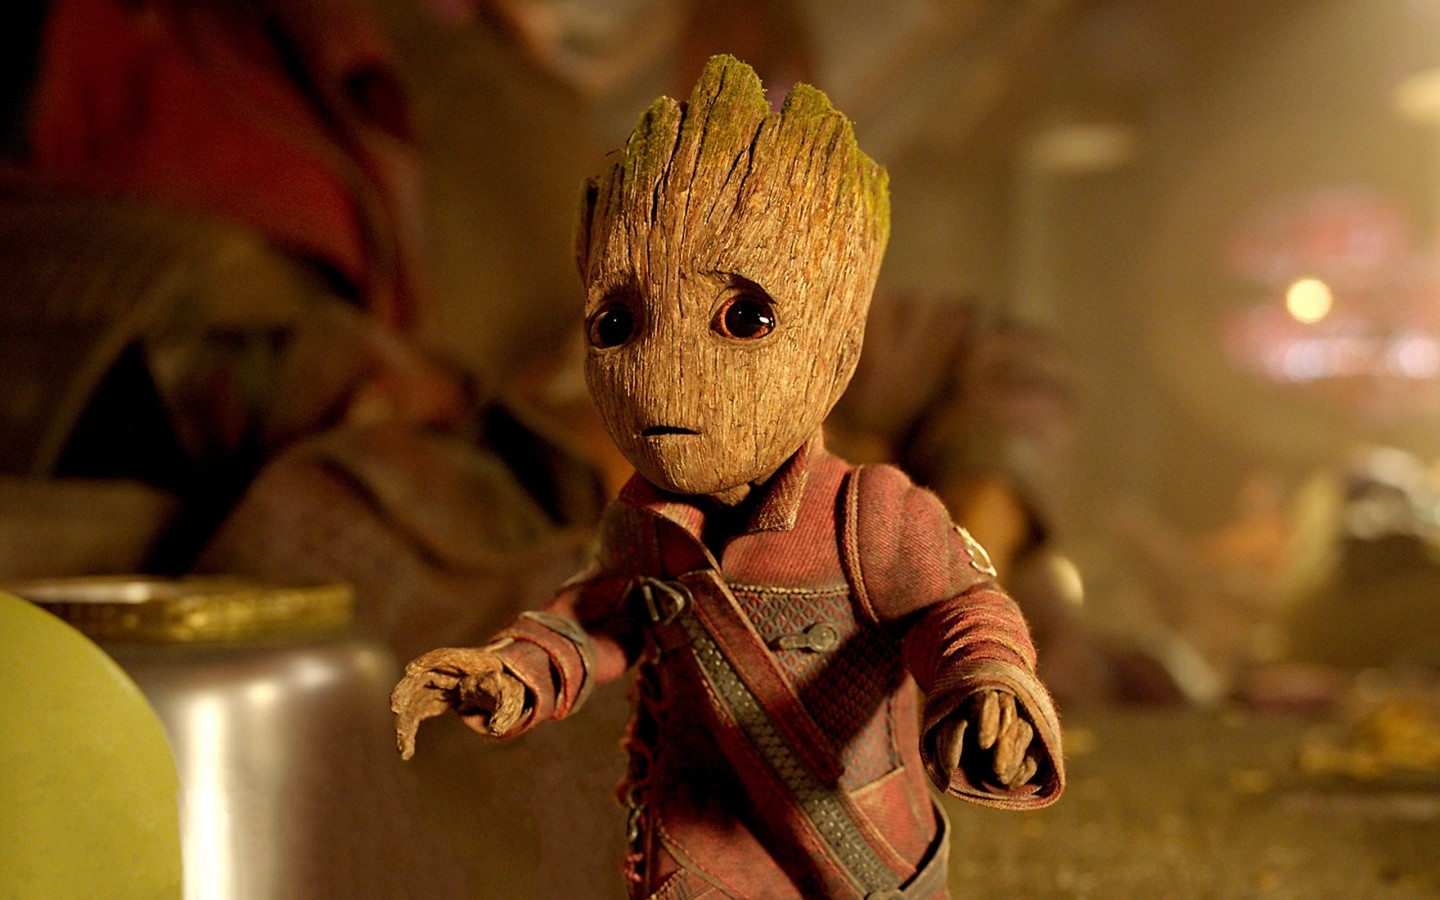 Nature Hd Wallpaper Widescreen 3d Baby Groot Guardians Of The Galaxy Vol 2 Wallpapers Hd